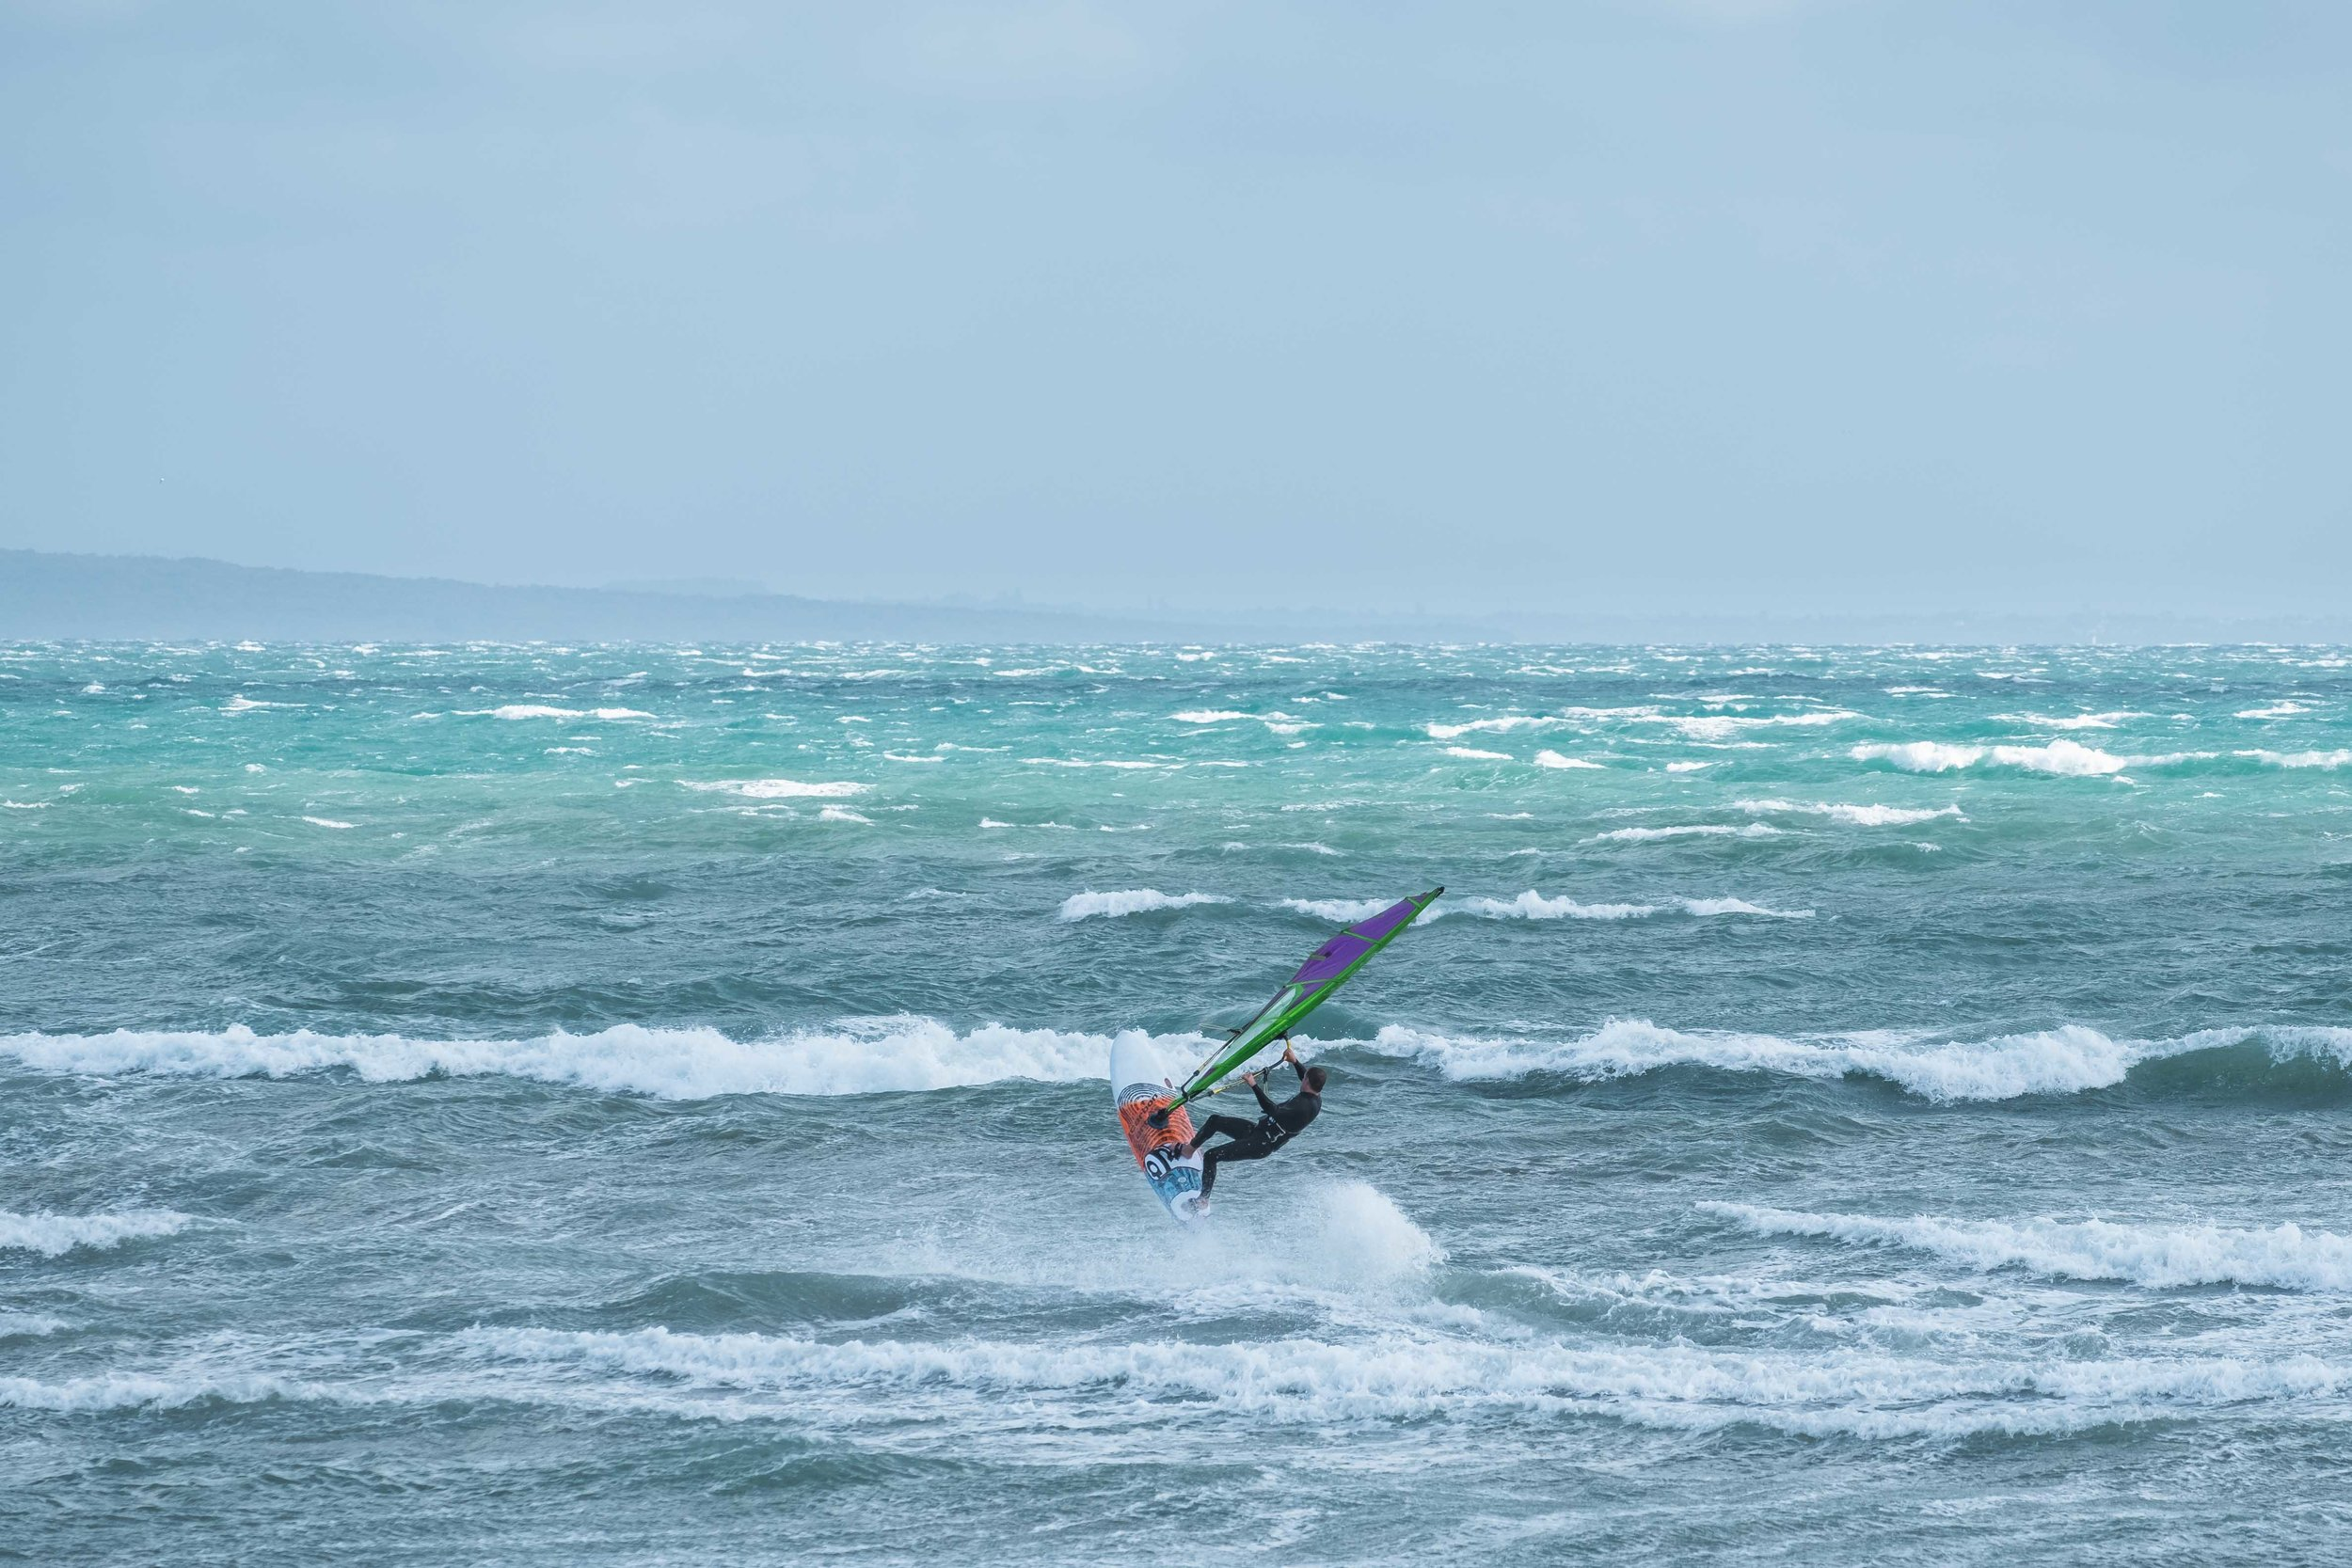 A wind surfer in action! He was pretty dope.